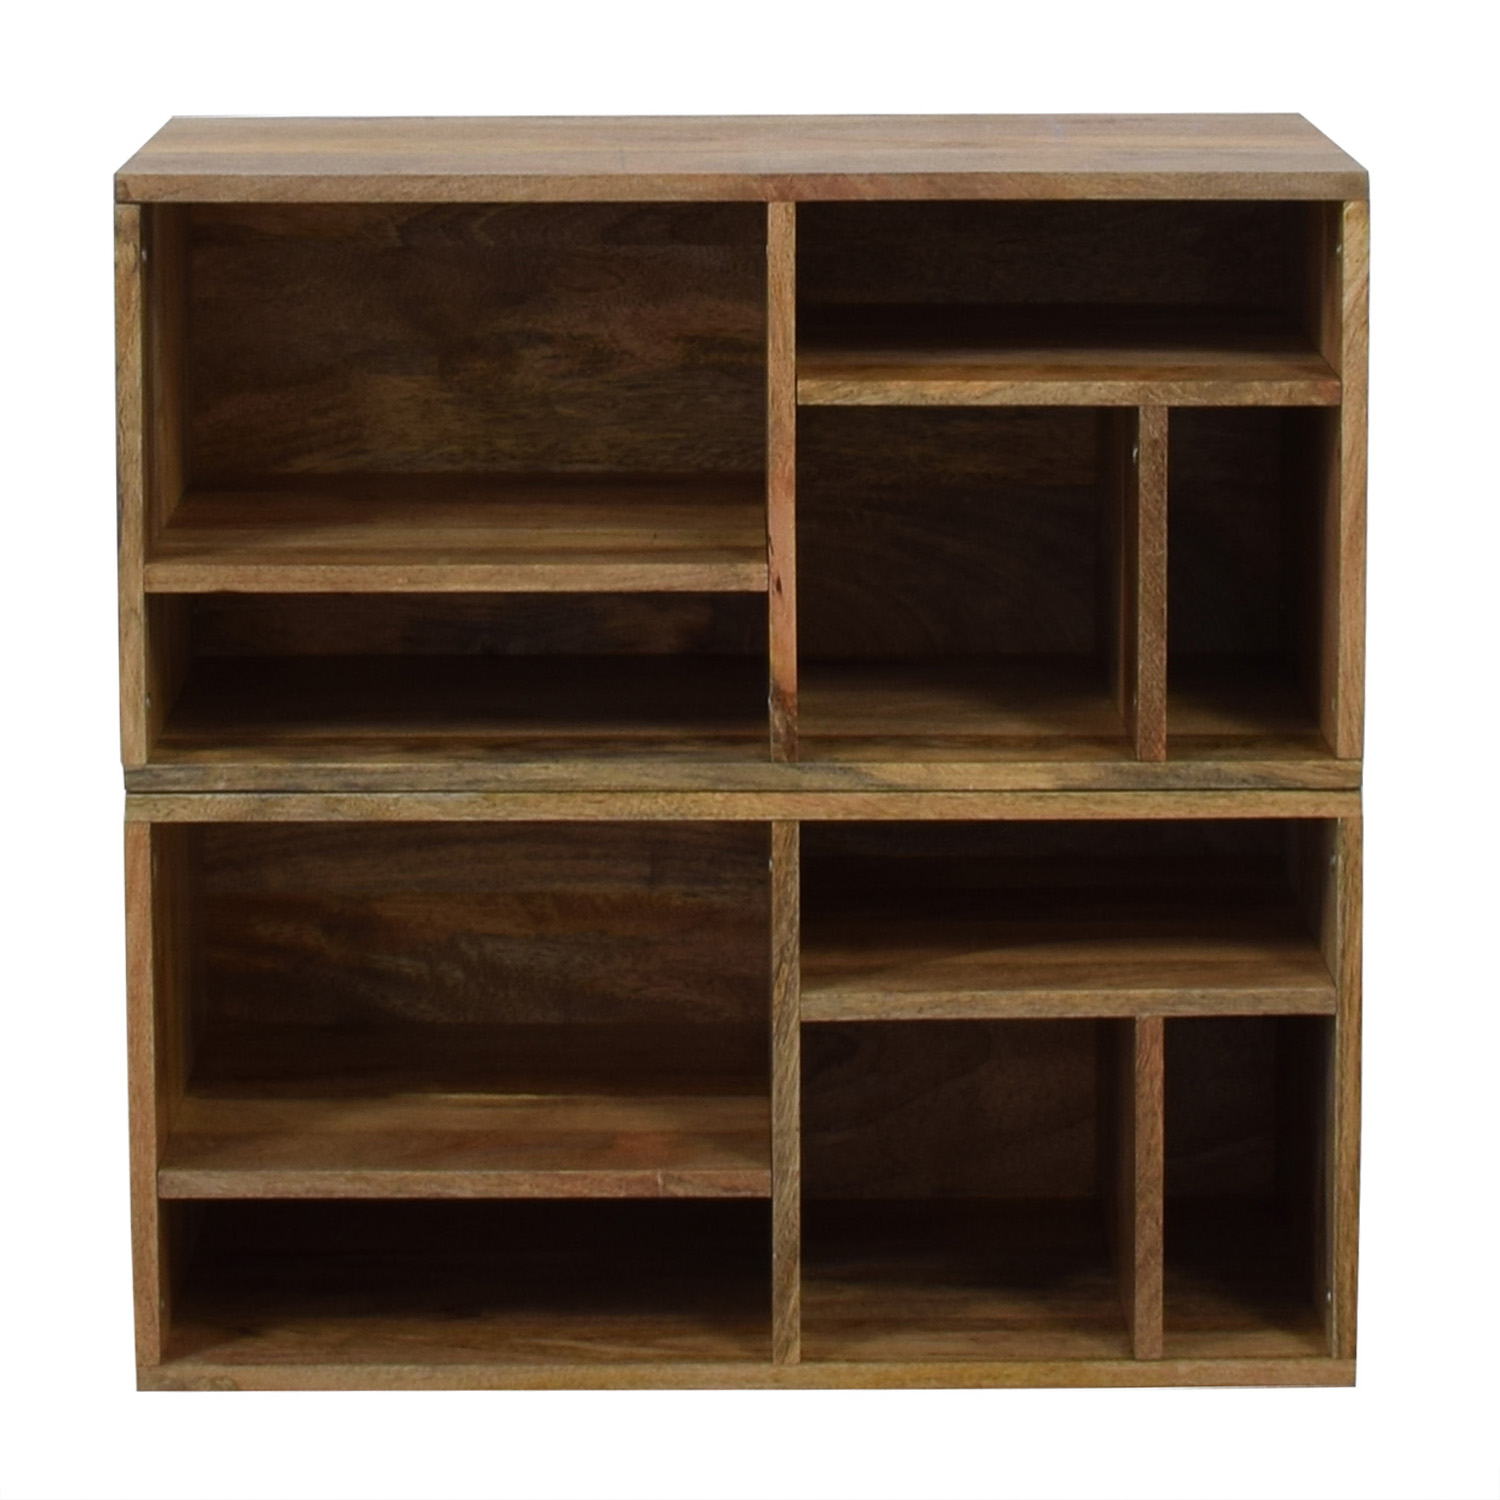 Urban Outfitters Urban Outfitters Raw Wood Bookshelves second hand